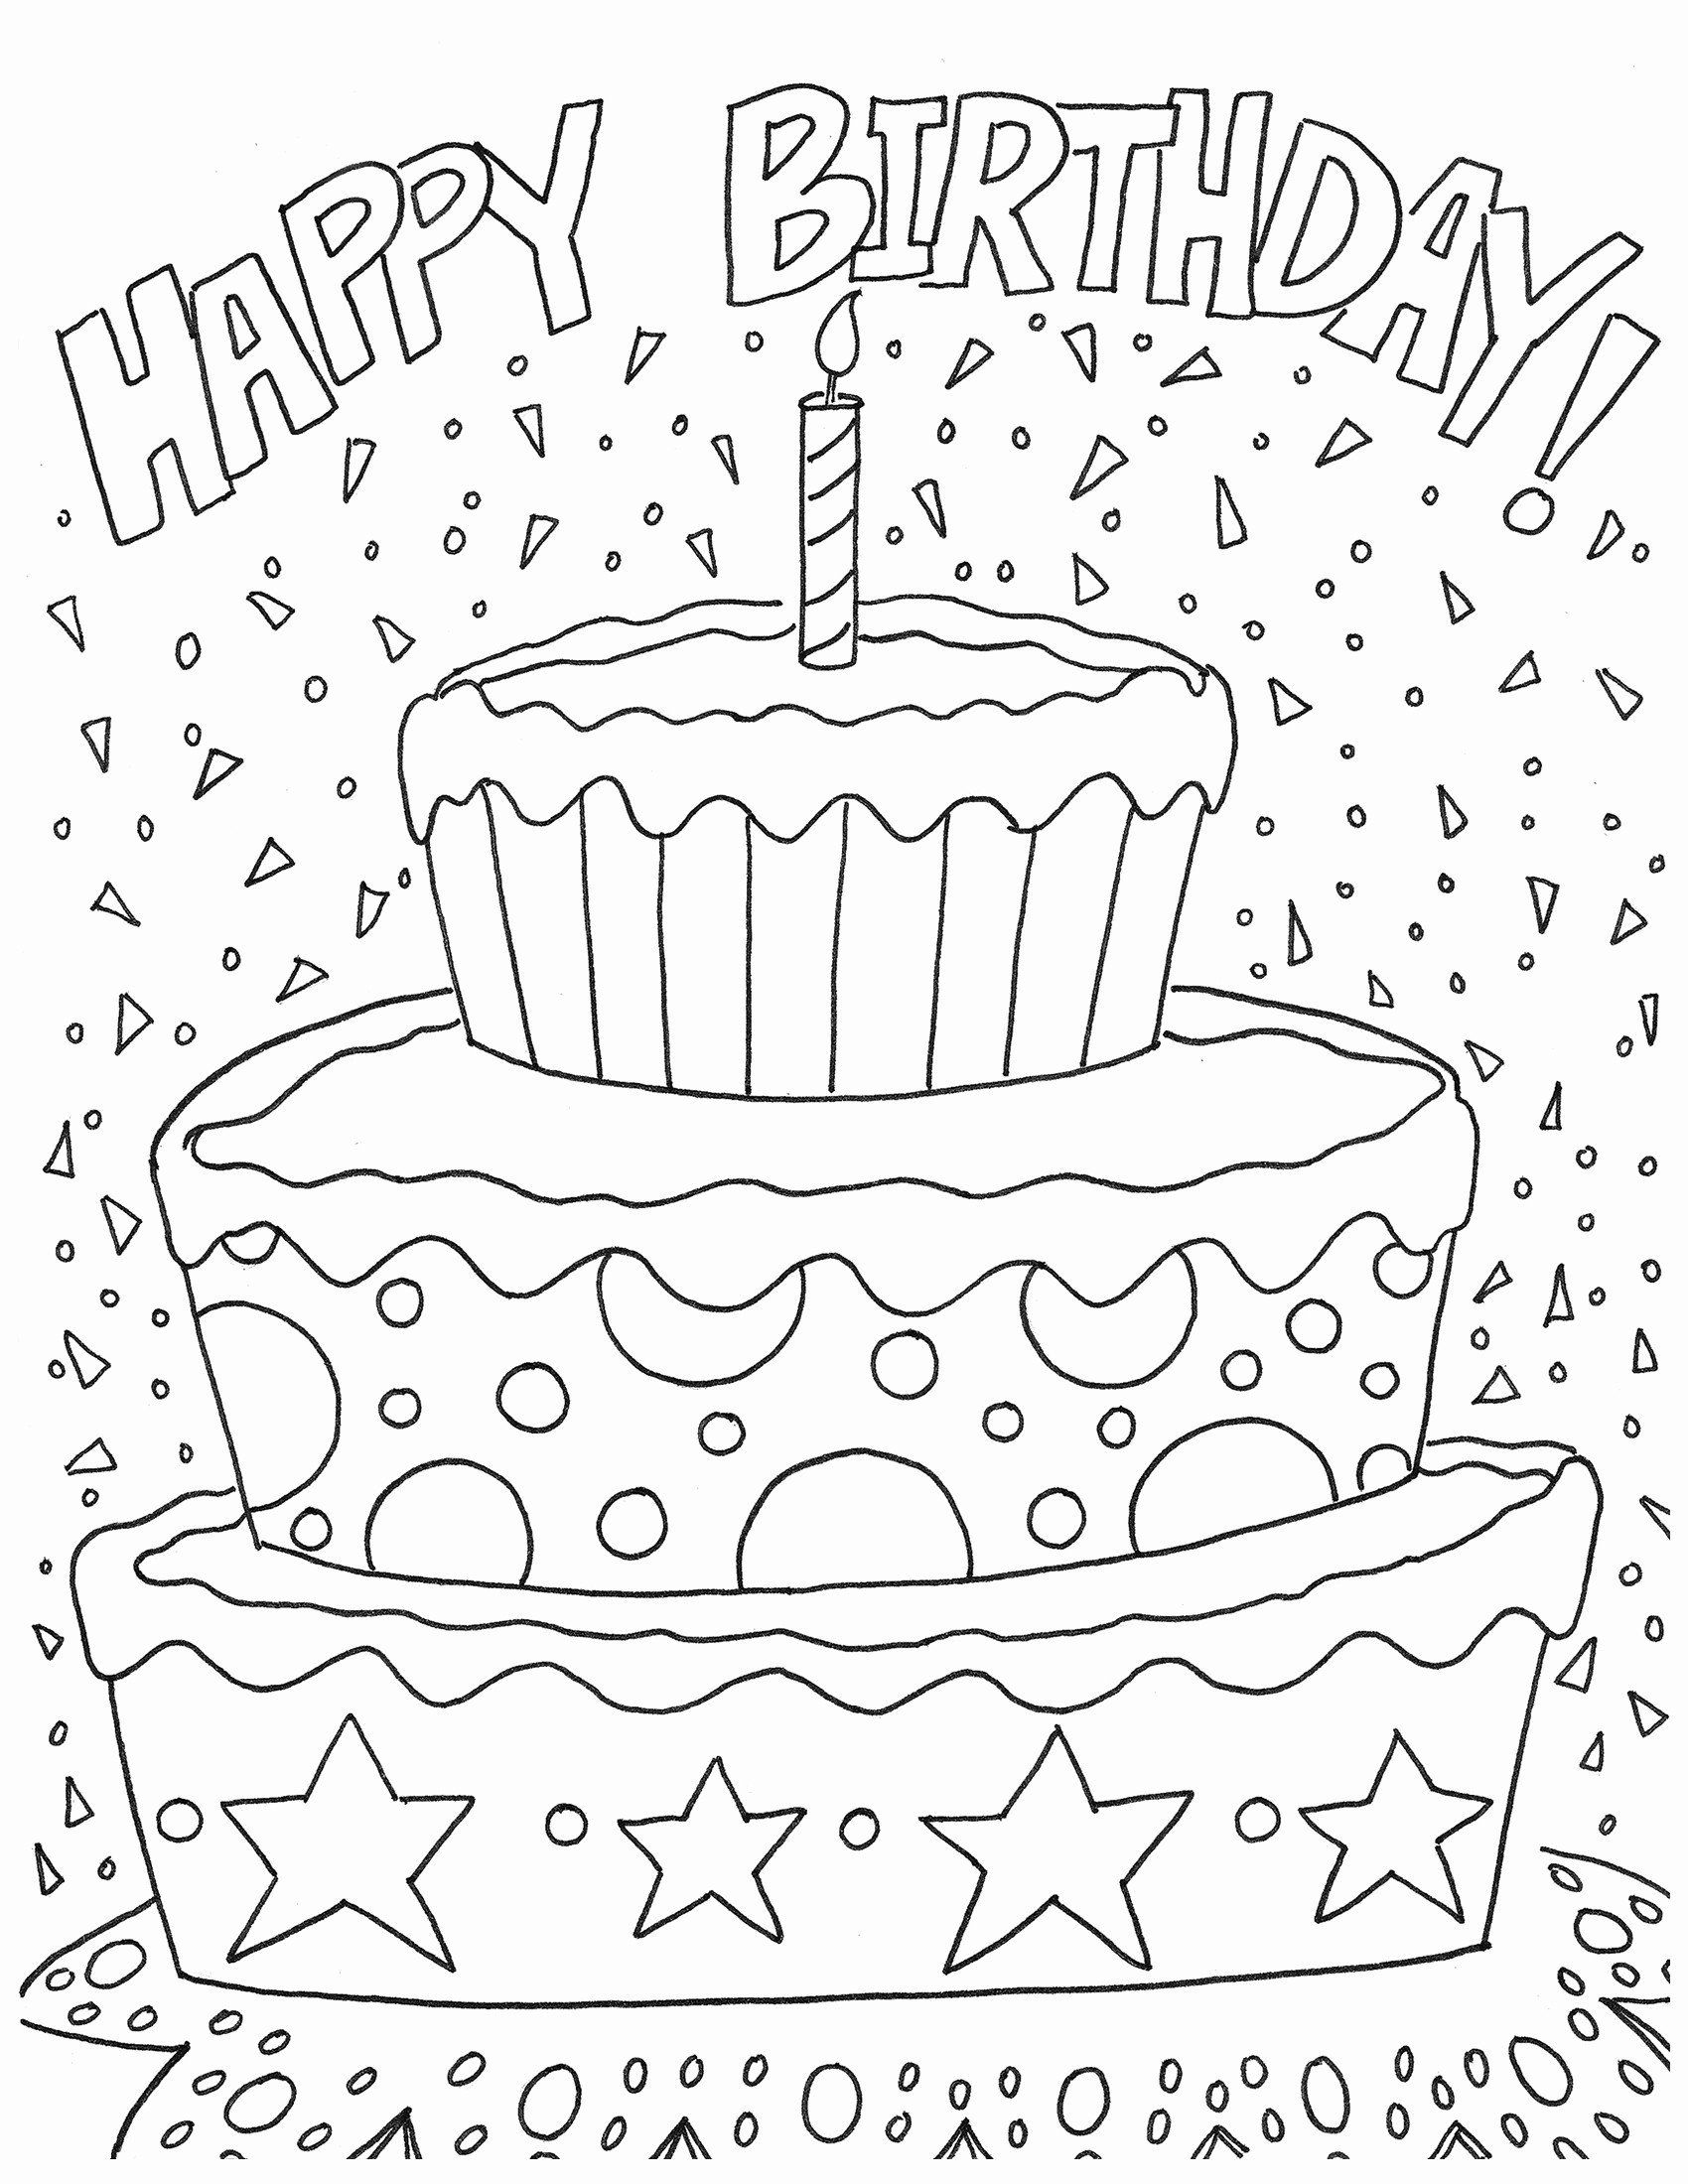 40th birthday coloring pages happy birthday printable coloring page coloring birthday 40th pages